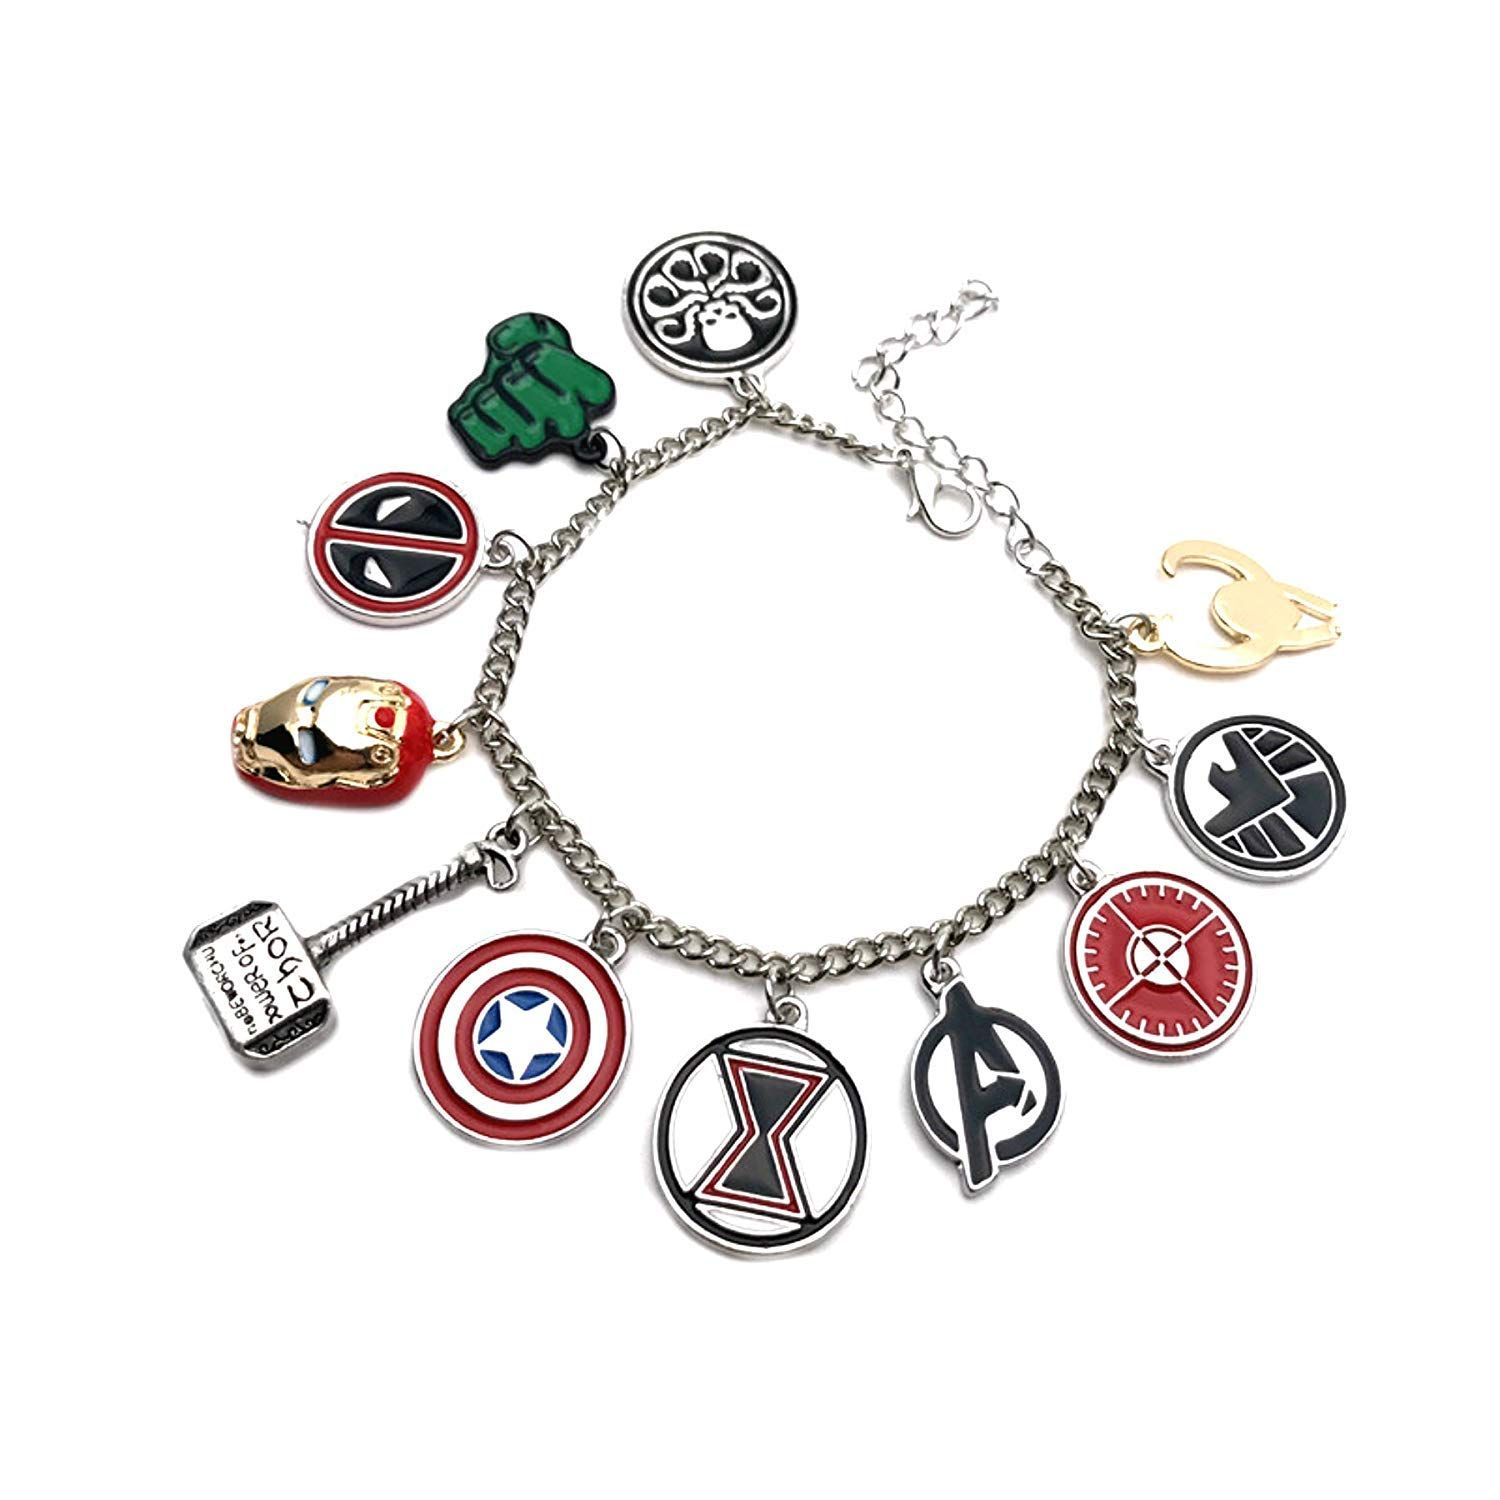 Yellow Chimes Avengers Merchandise Charms Bracelet For Girls And Women In 2021 Marvel Jewelry Charm Bracelets For Girls Fandom Jewelry